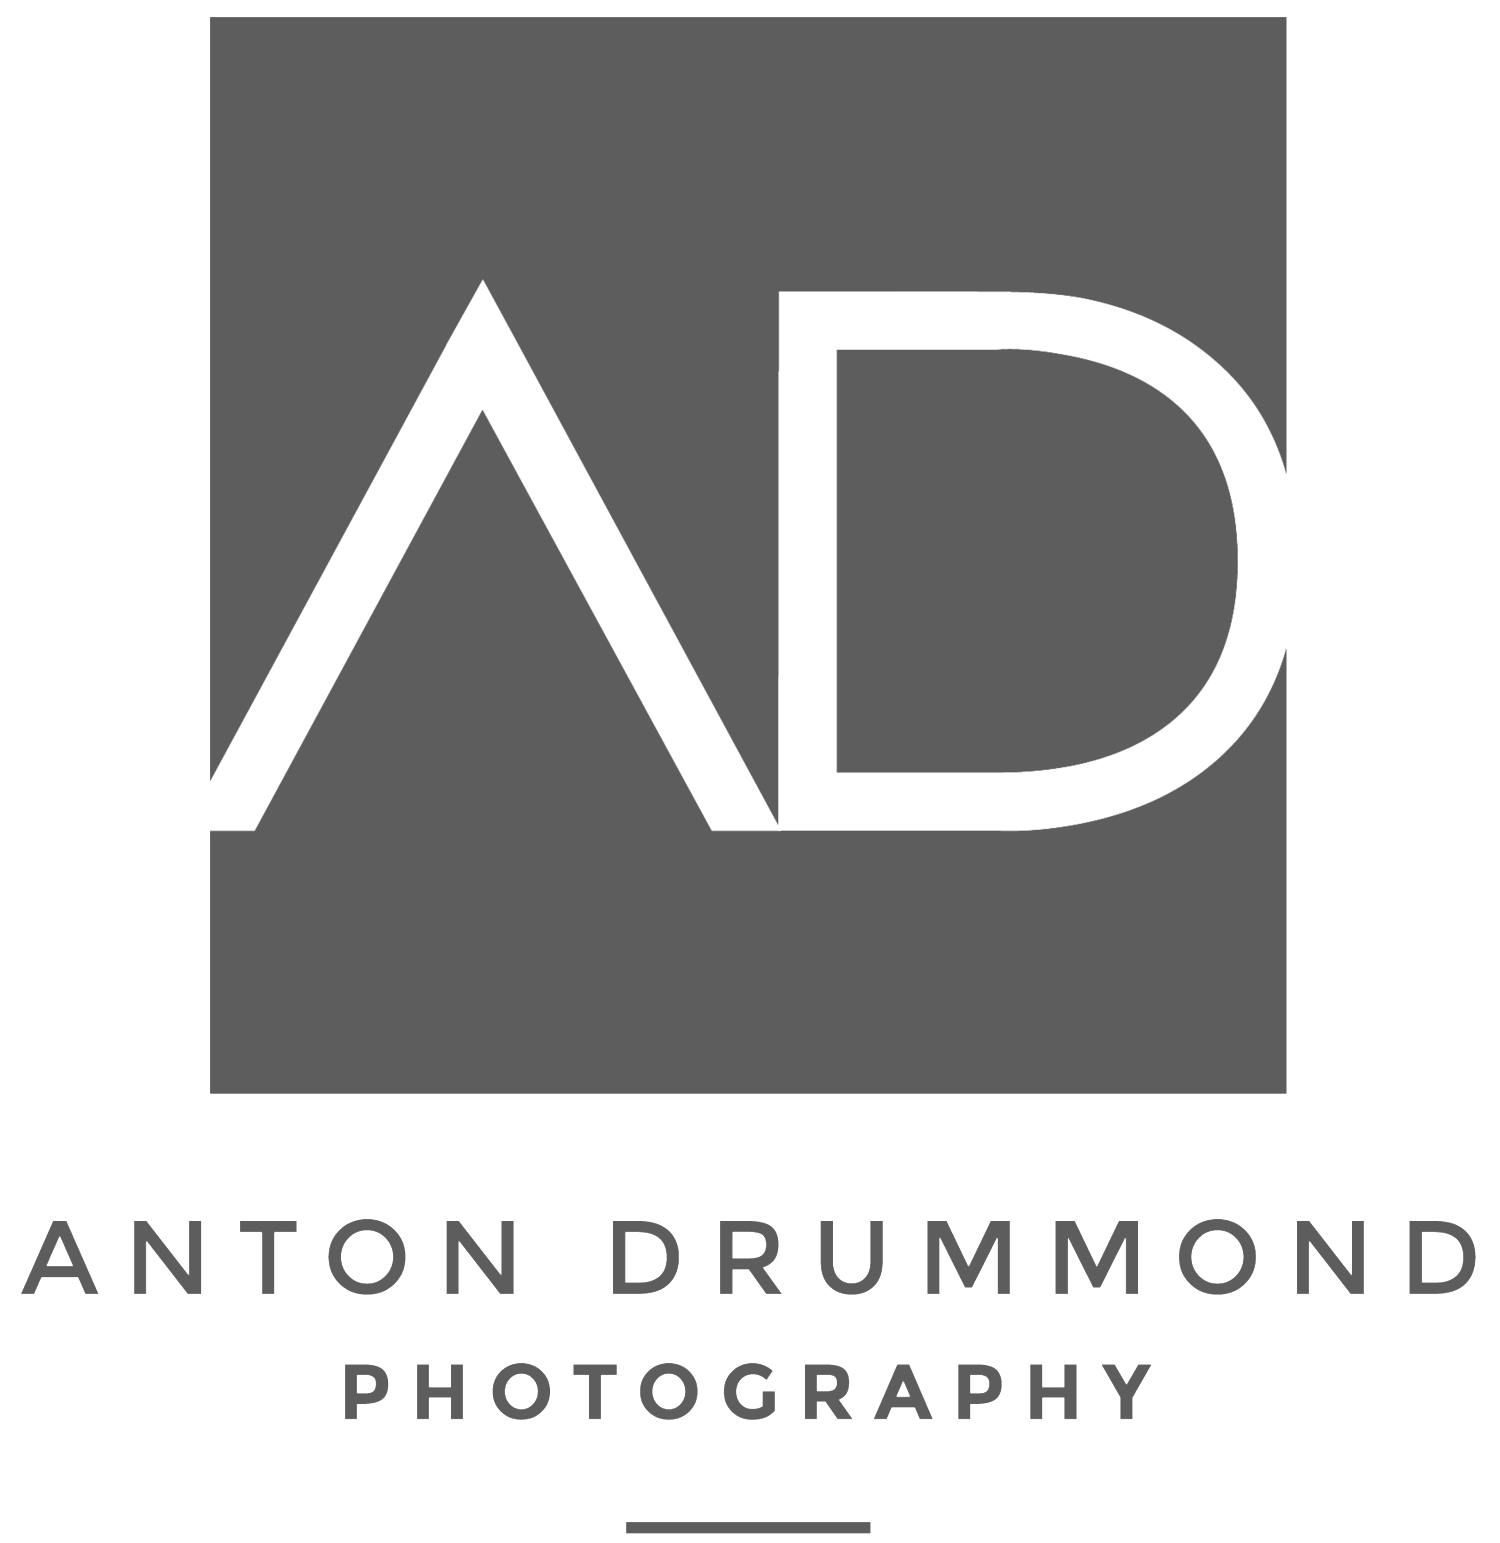 Anton Drummond Photography - Philadelphia Wedding Photographer - Wedding Photographers - Philadelphia, PA